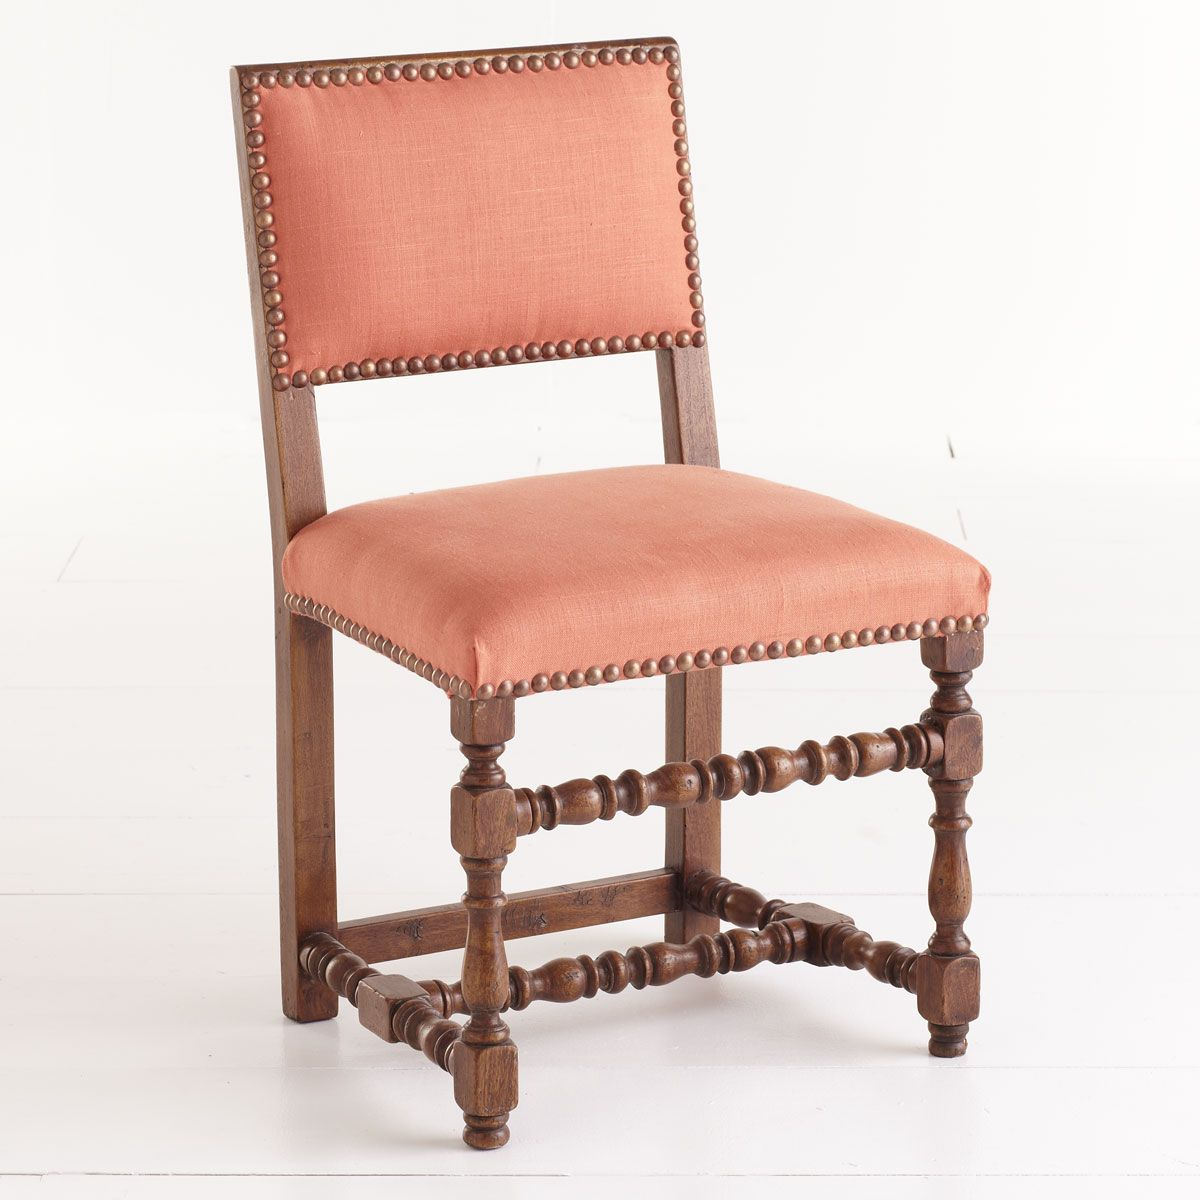 W7504 Farthingale Chair Chairs Chair Upholstery Furniture Chair